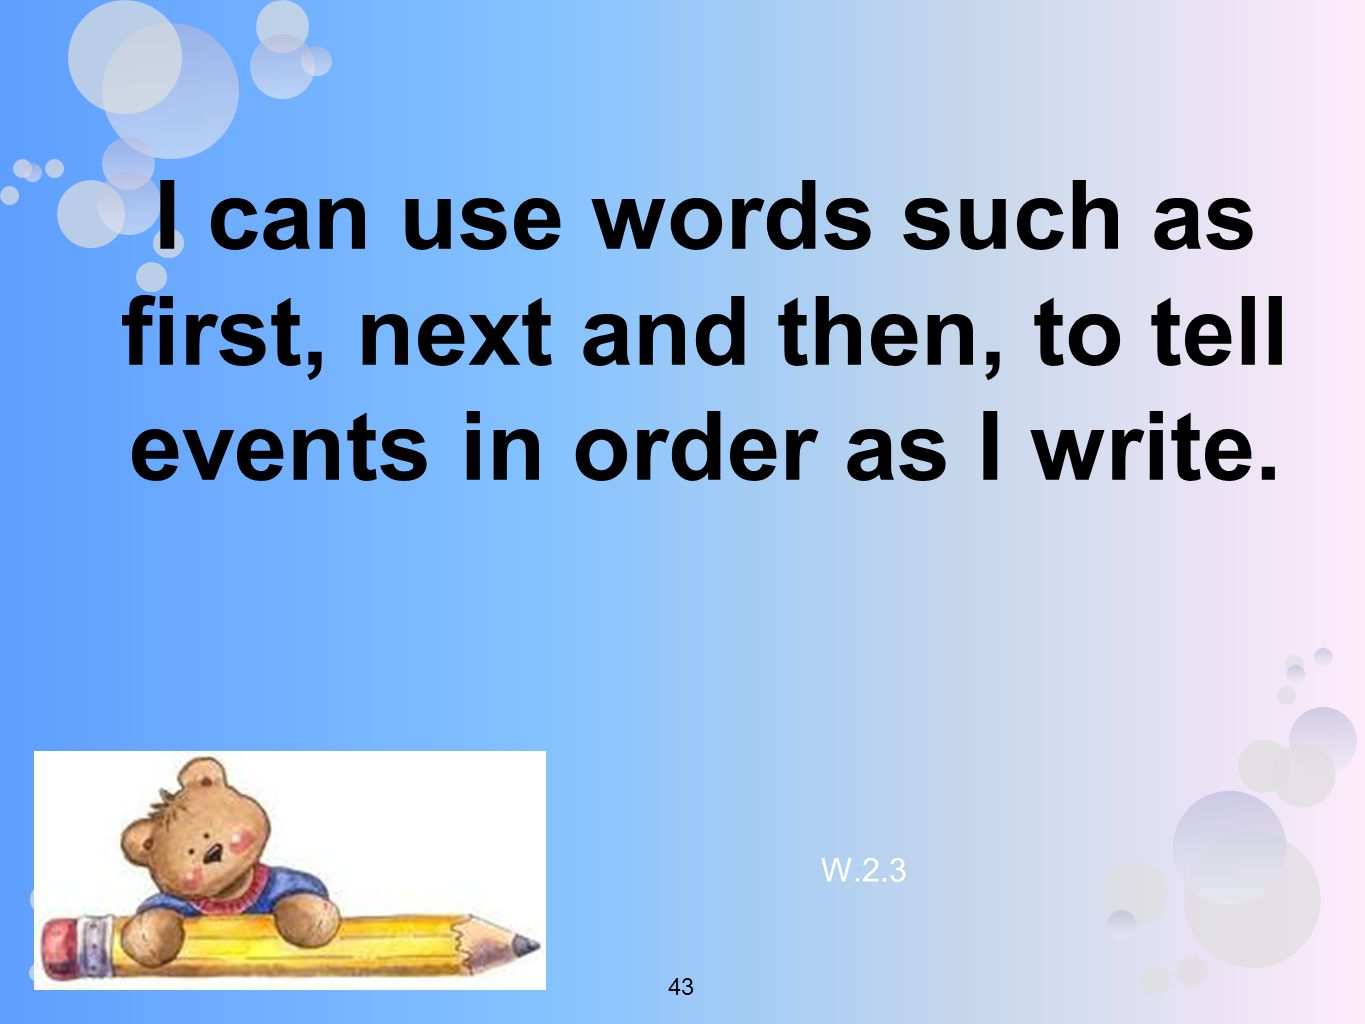 I can use words such as first, next and then, to tell events in order as I write. W